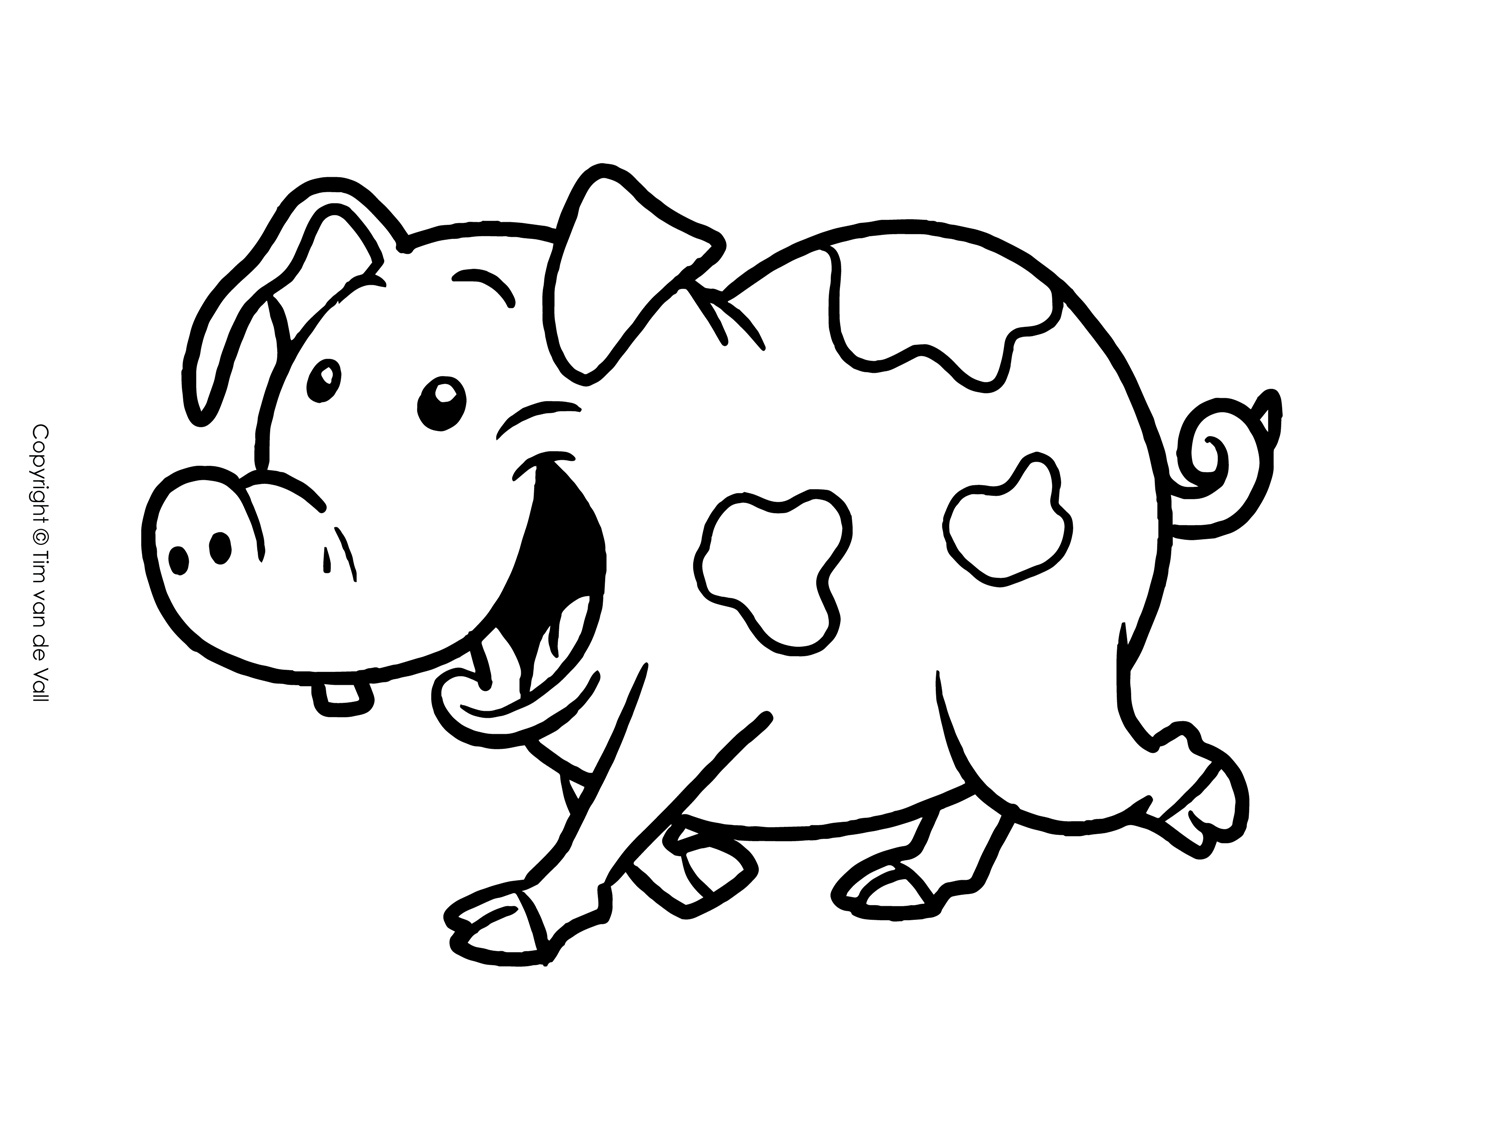 pigs coloring pages free printable pig coloring pages for kids pigs pages coloring